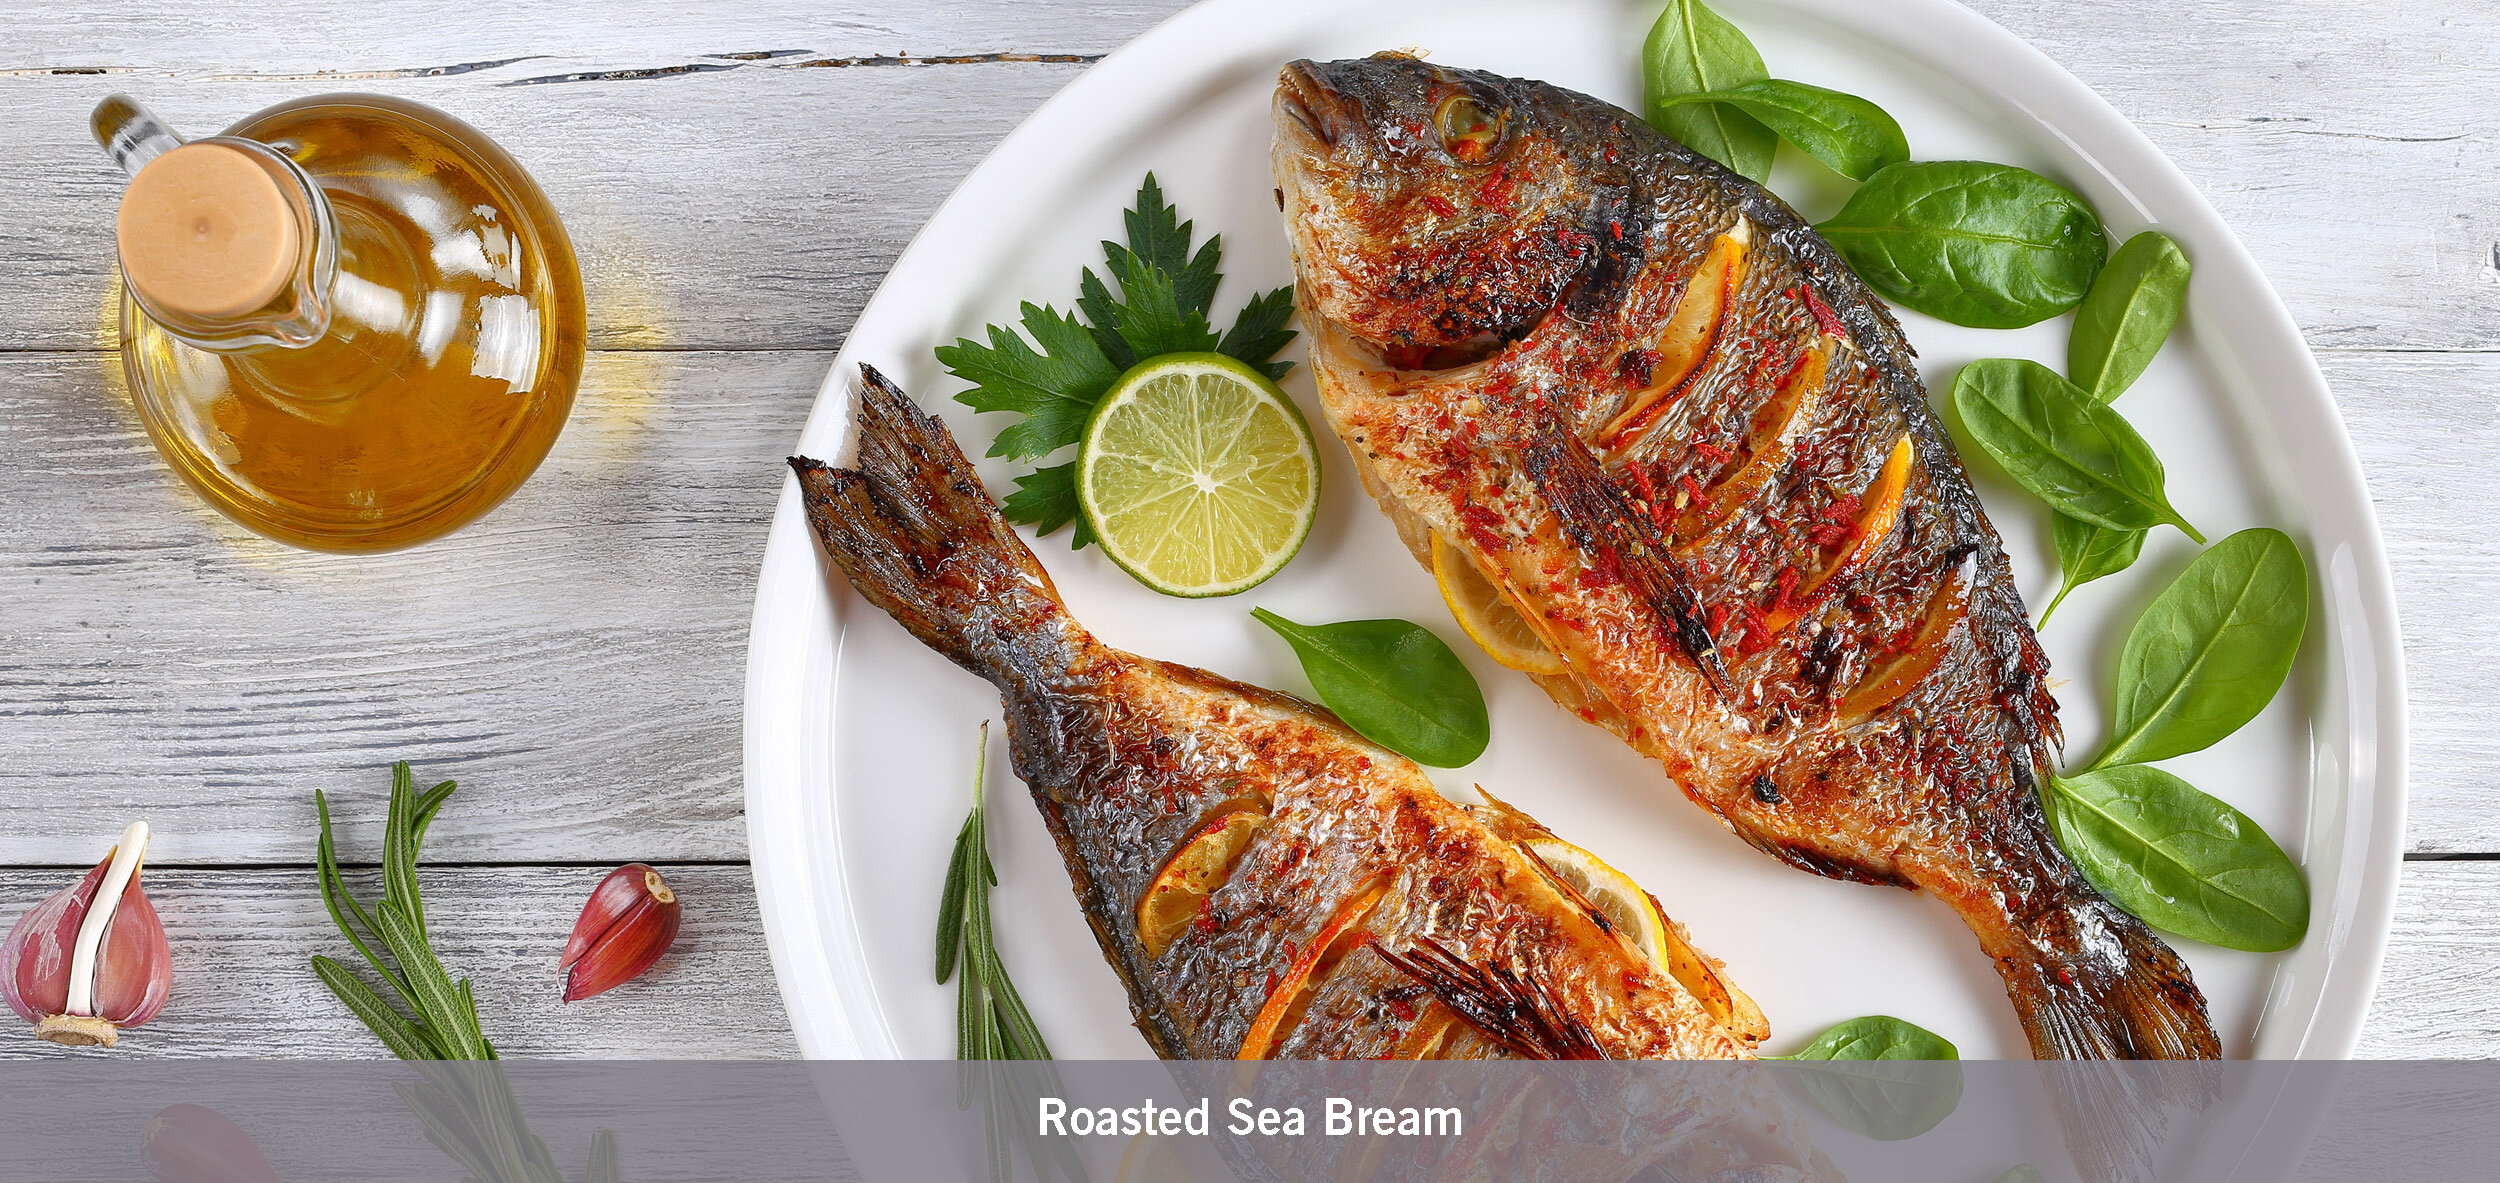 Roasted Sea Bream